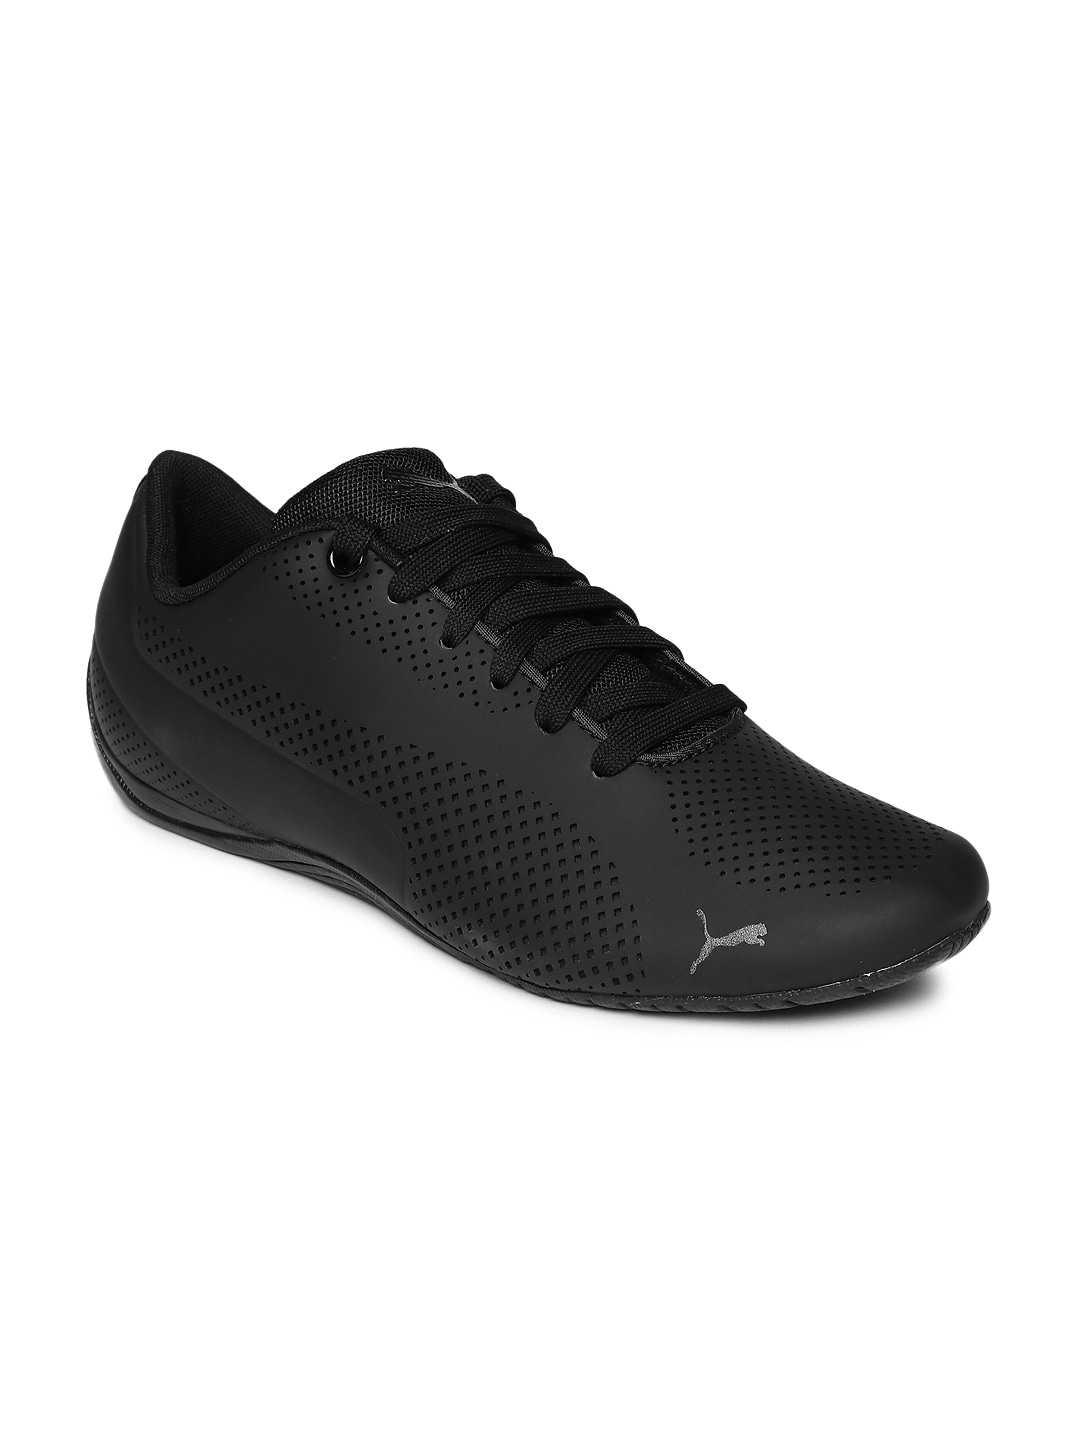 a26e54964abf17 Buy Puma Unisex Black Future Cat ReEng Quilted Leather Sneakers ...